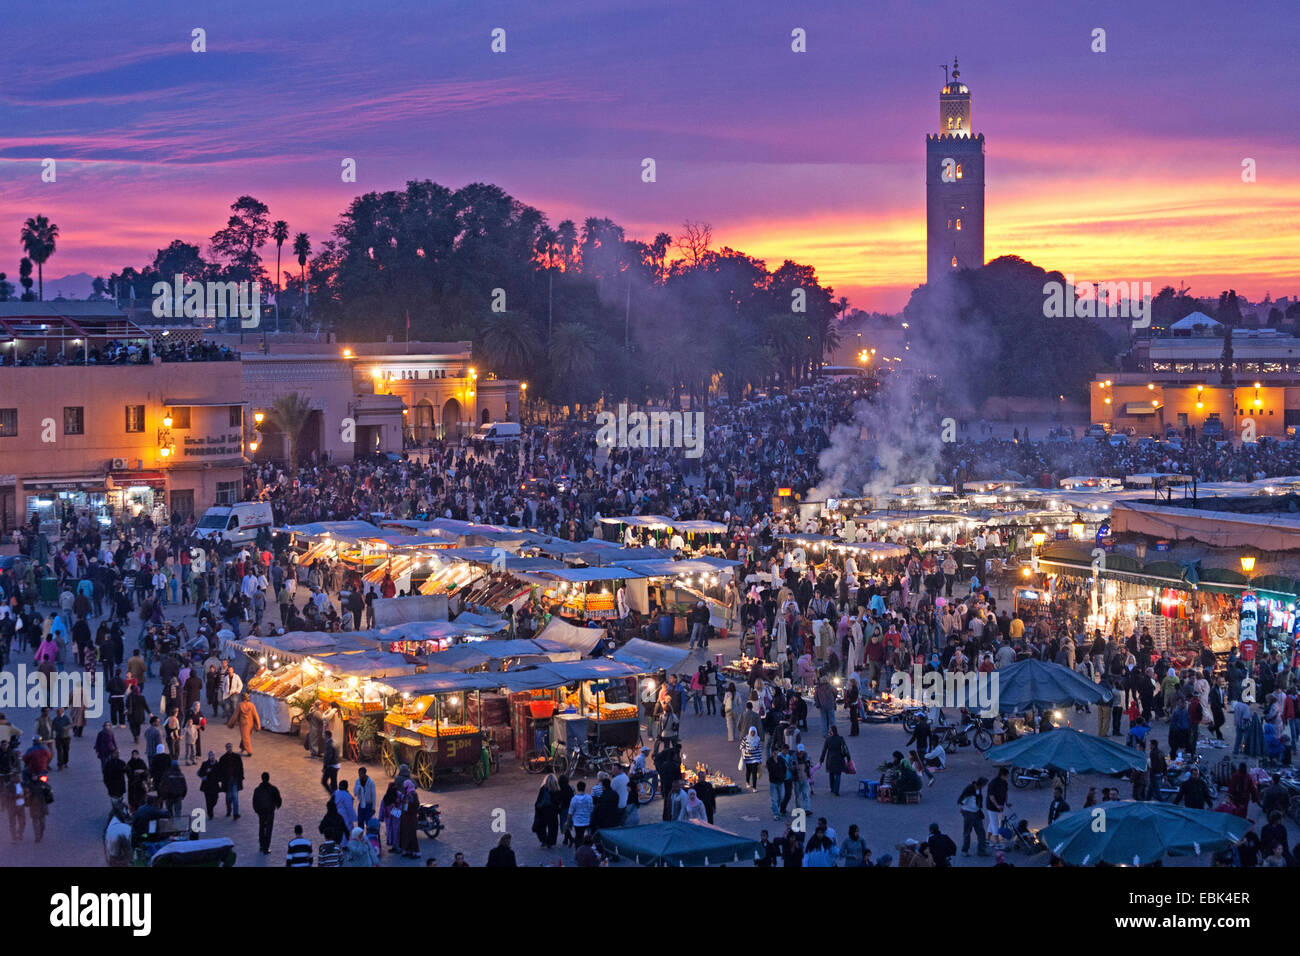 market place Djemaa el Fna in the evening, Morocco, Marrakesh - Stock Image